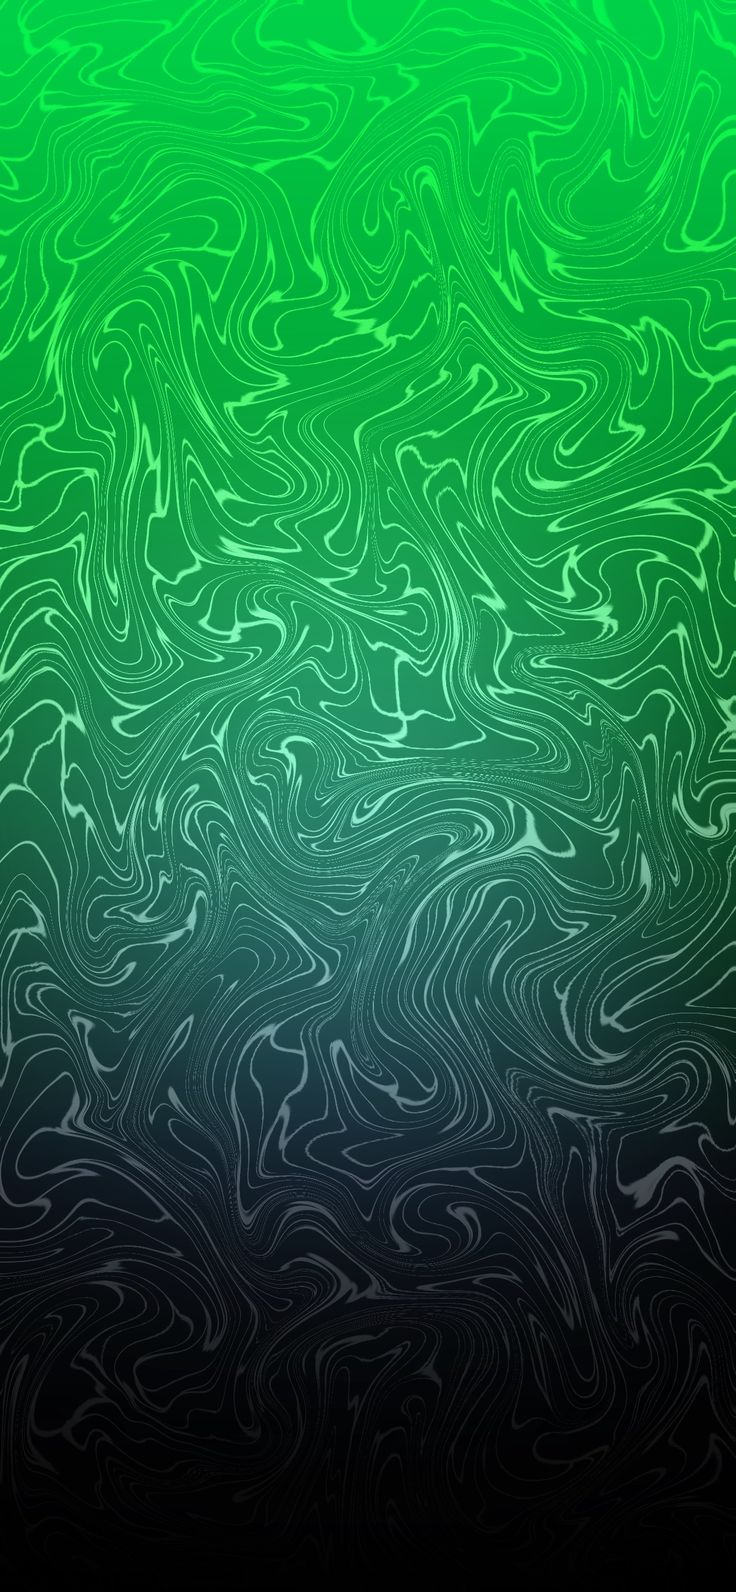 NEW* Abstract Wallpaper Designed By ©Hotspot4U